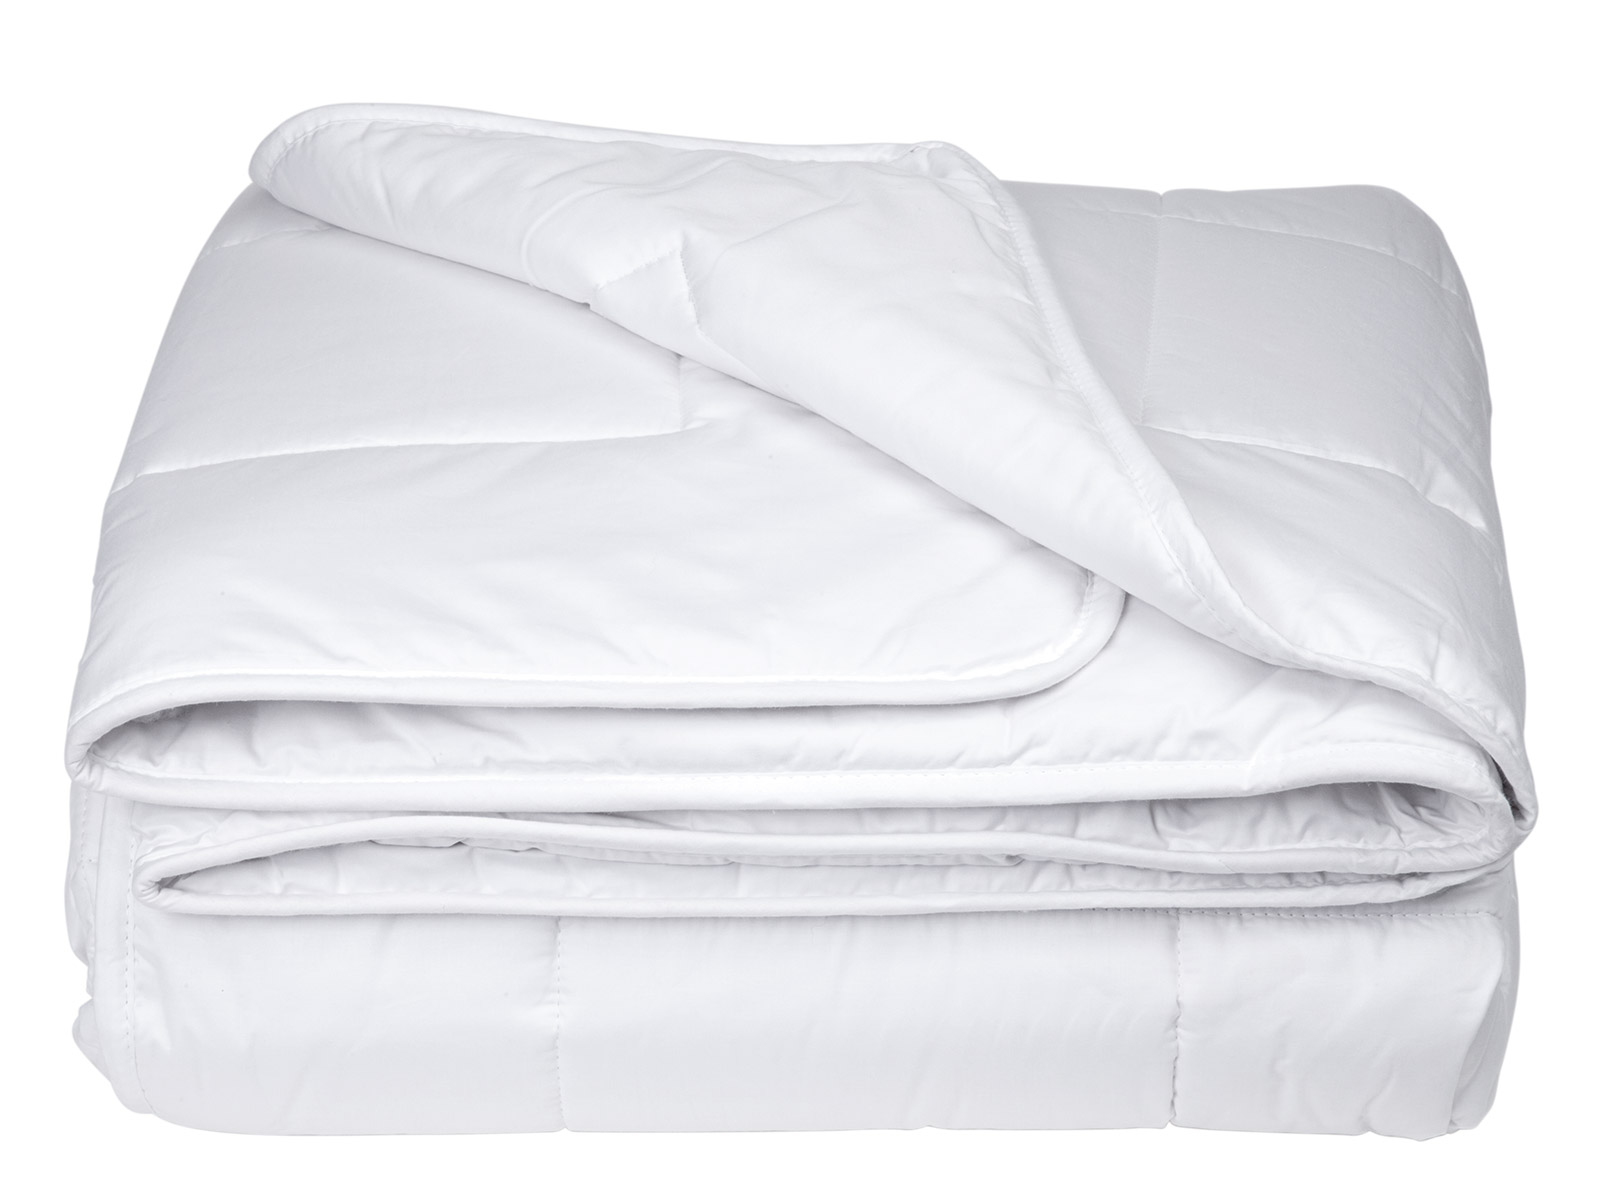 Washable Cotton Filled Comforter